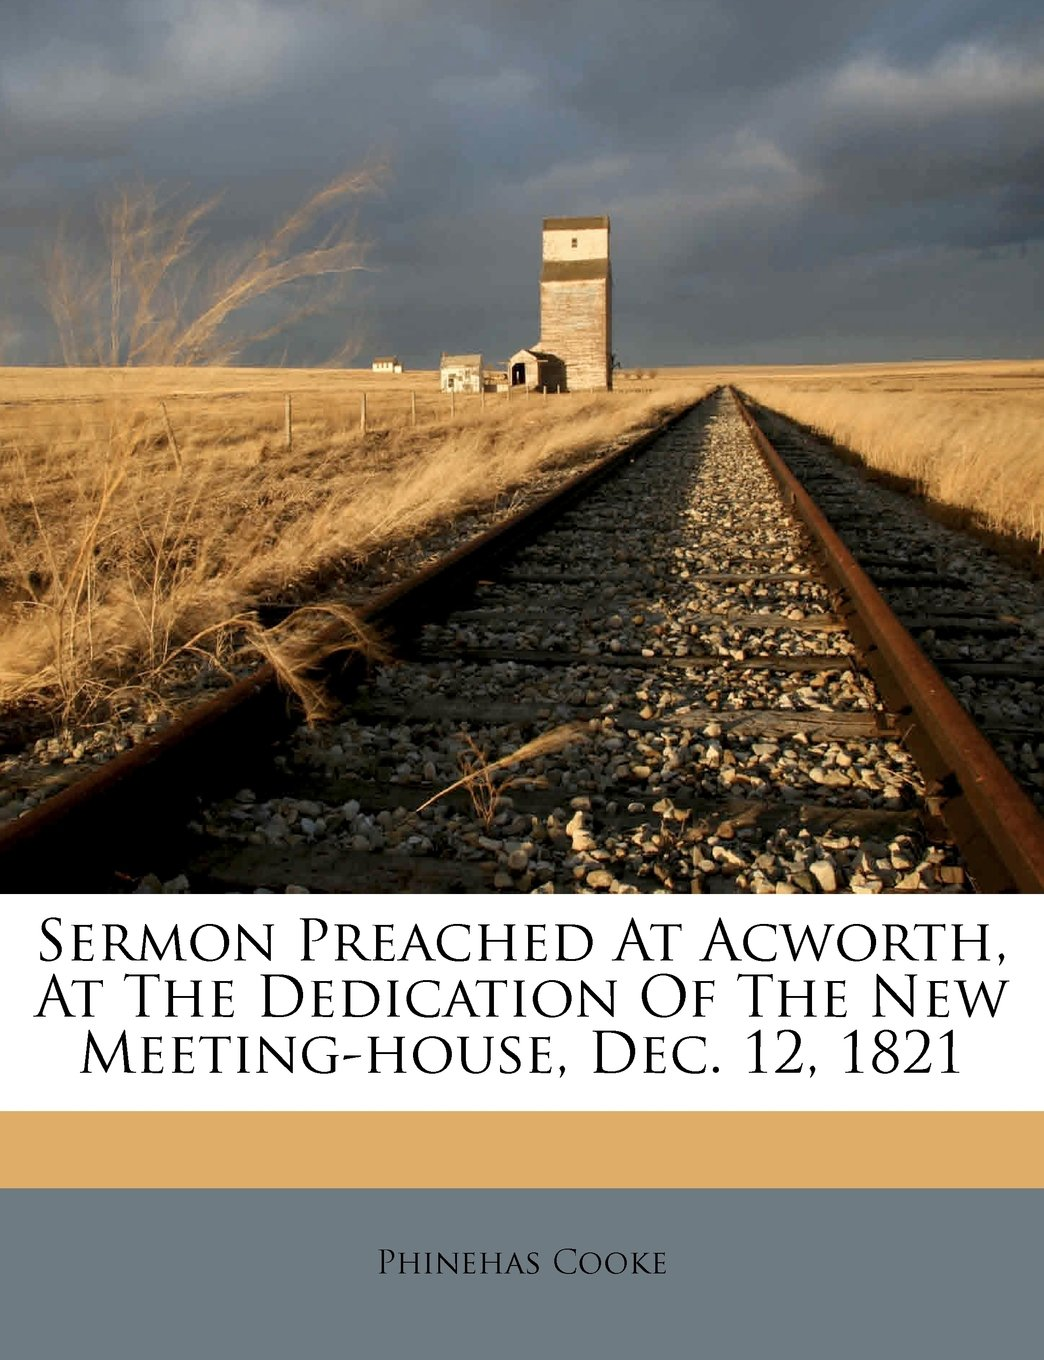 Download Sermon Preached At Acworth, At The Dedication Of The New Meeting-house, Dec. 12, 1821 PDF